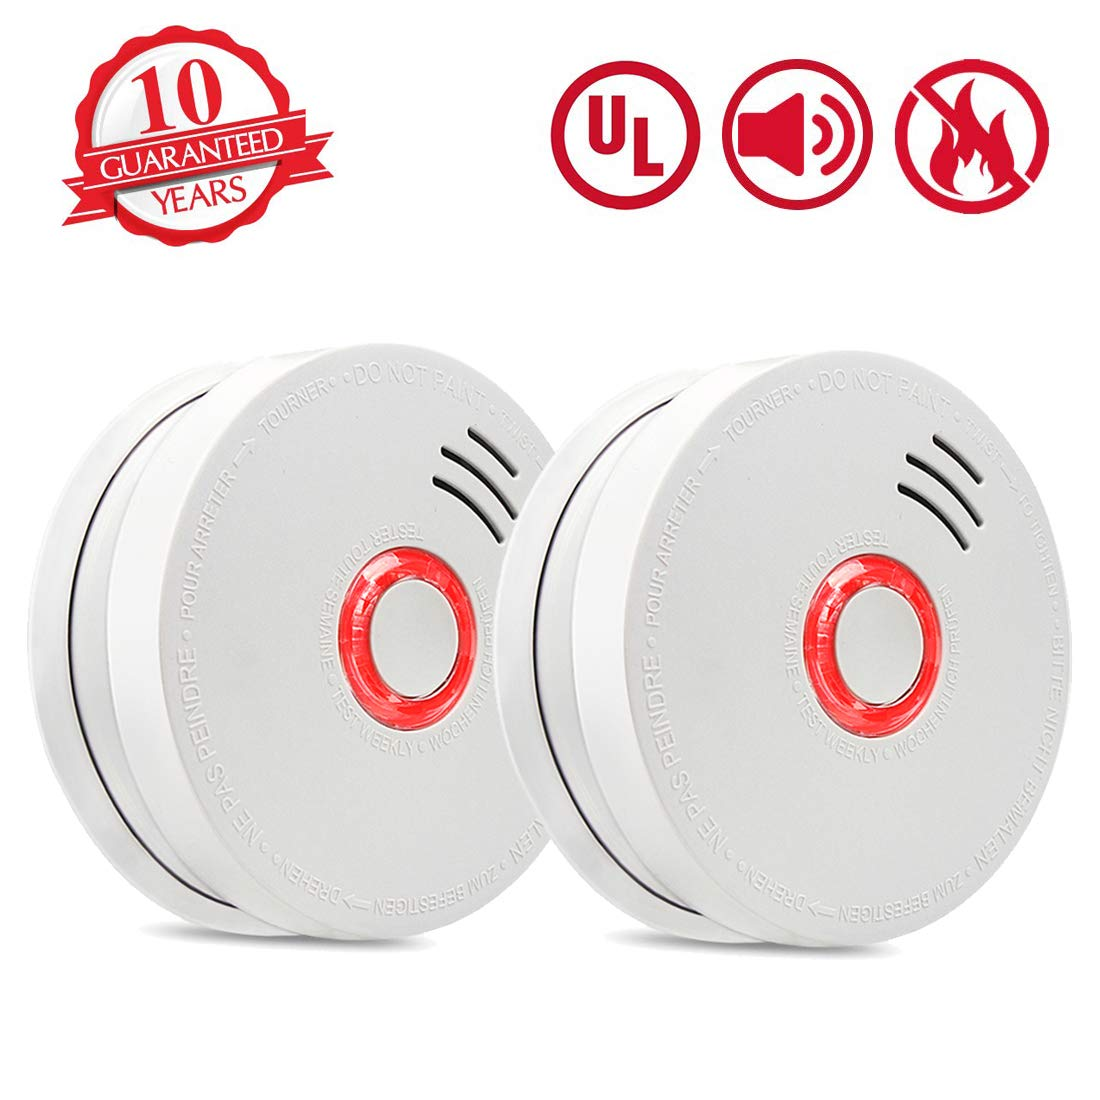 Smoke Detector Fire Alarm, 2 Packs Photoelectric Smoke Detectors with UL Listed, 9V Battery Operated Smoke Detector (9V Battery Included), 10 Years Life Time, Fire Safety for Home, Hotel, School etc